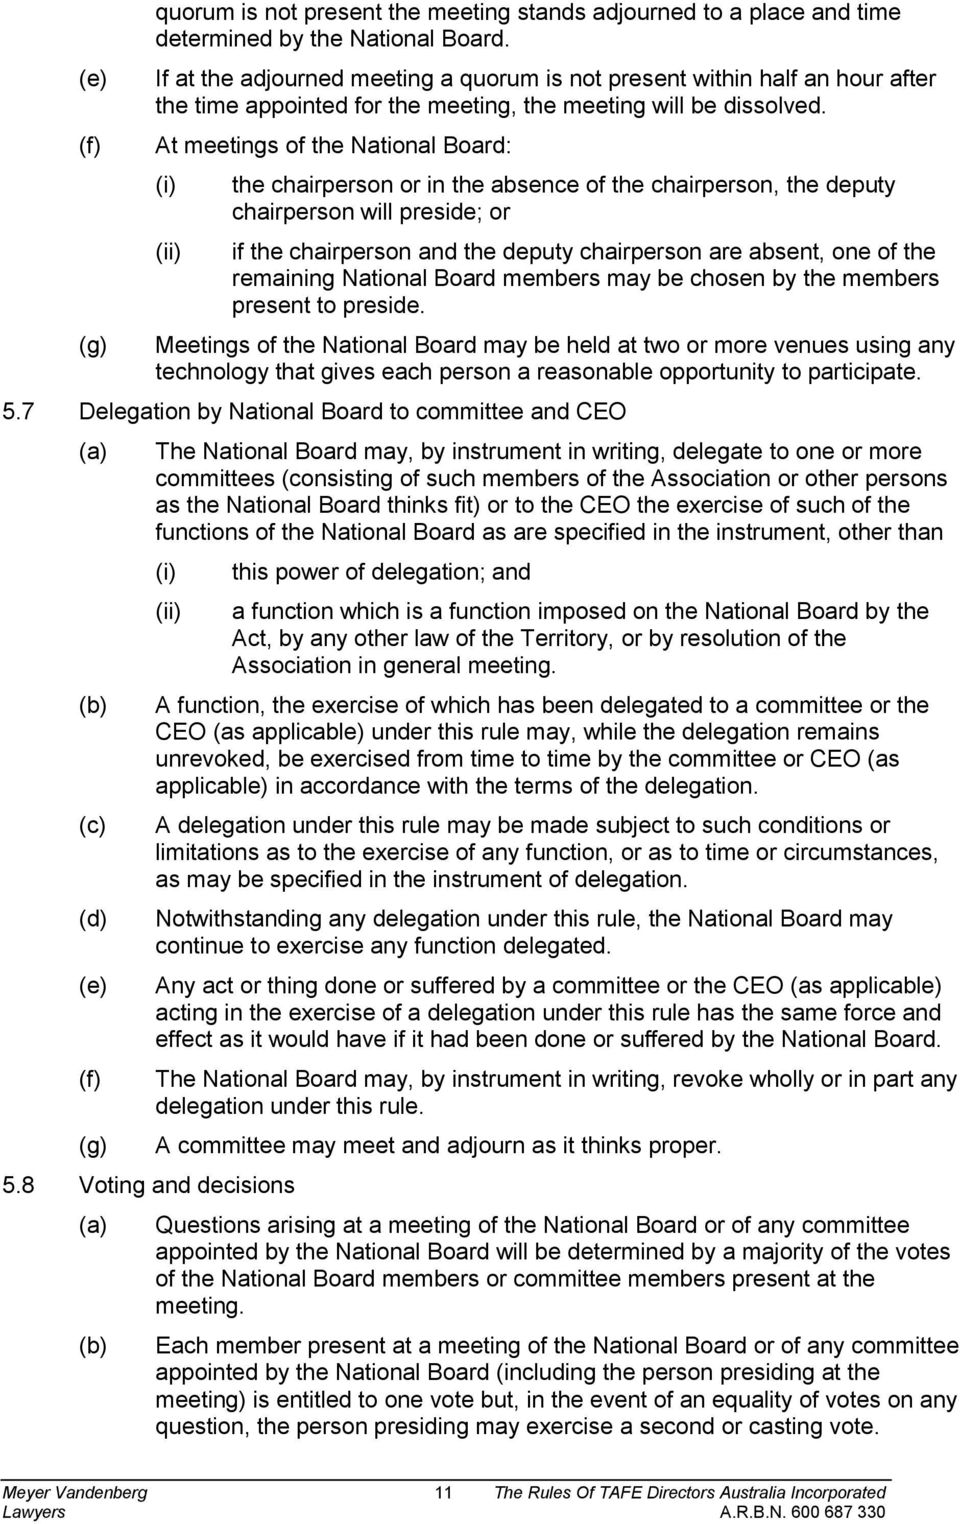 At meetings of the National Board: the chairperson or in the absence of the chairperson, the deputy chairperson will preside; or if the chairperson and the deputy chairperson are absent, one of the